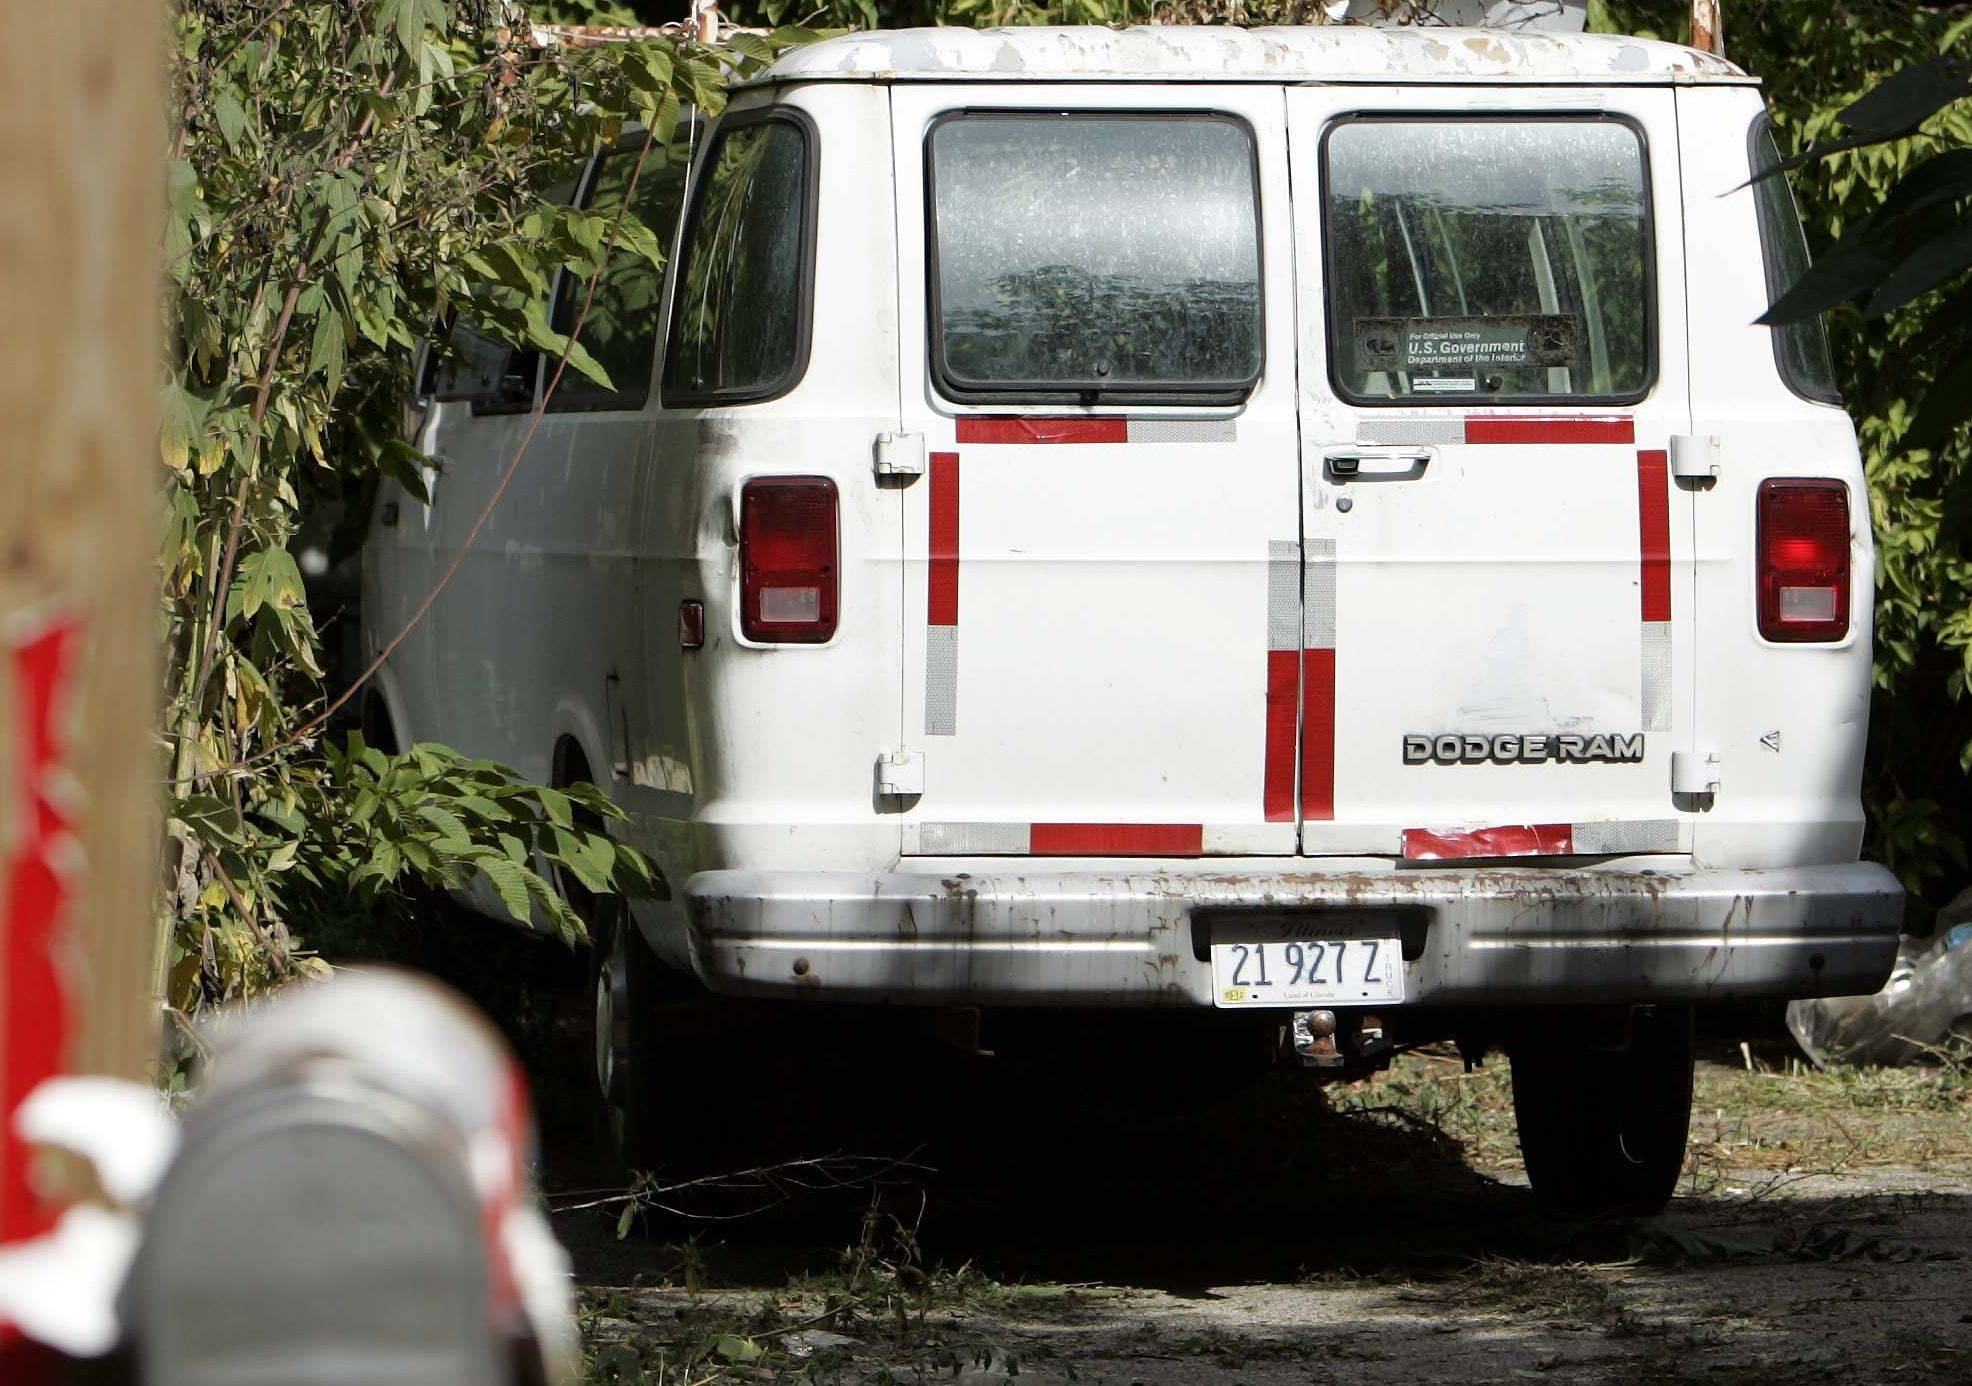 Police found 43 dead animals -- mostly cats -- in a van Wednesday on the 200 block of Villa Street in Elgin. William C. Tinkler told police during an animal cruelty investigation that he put the animals in the van because he wanted to preserve them.